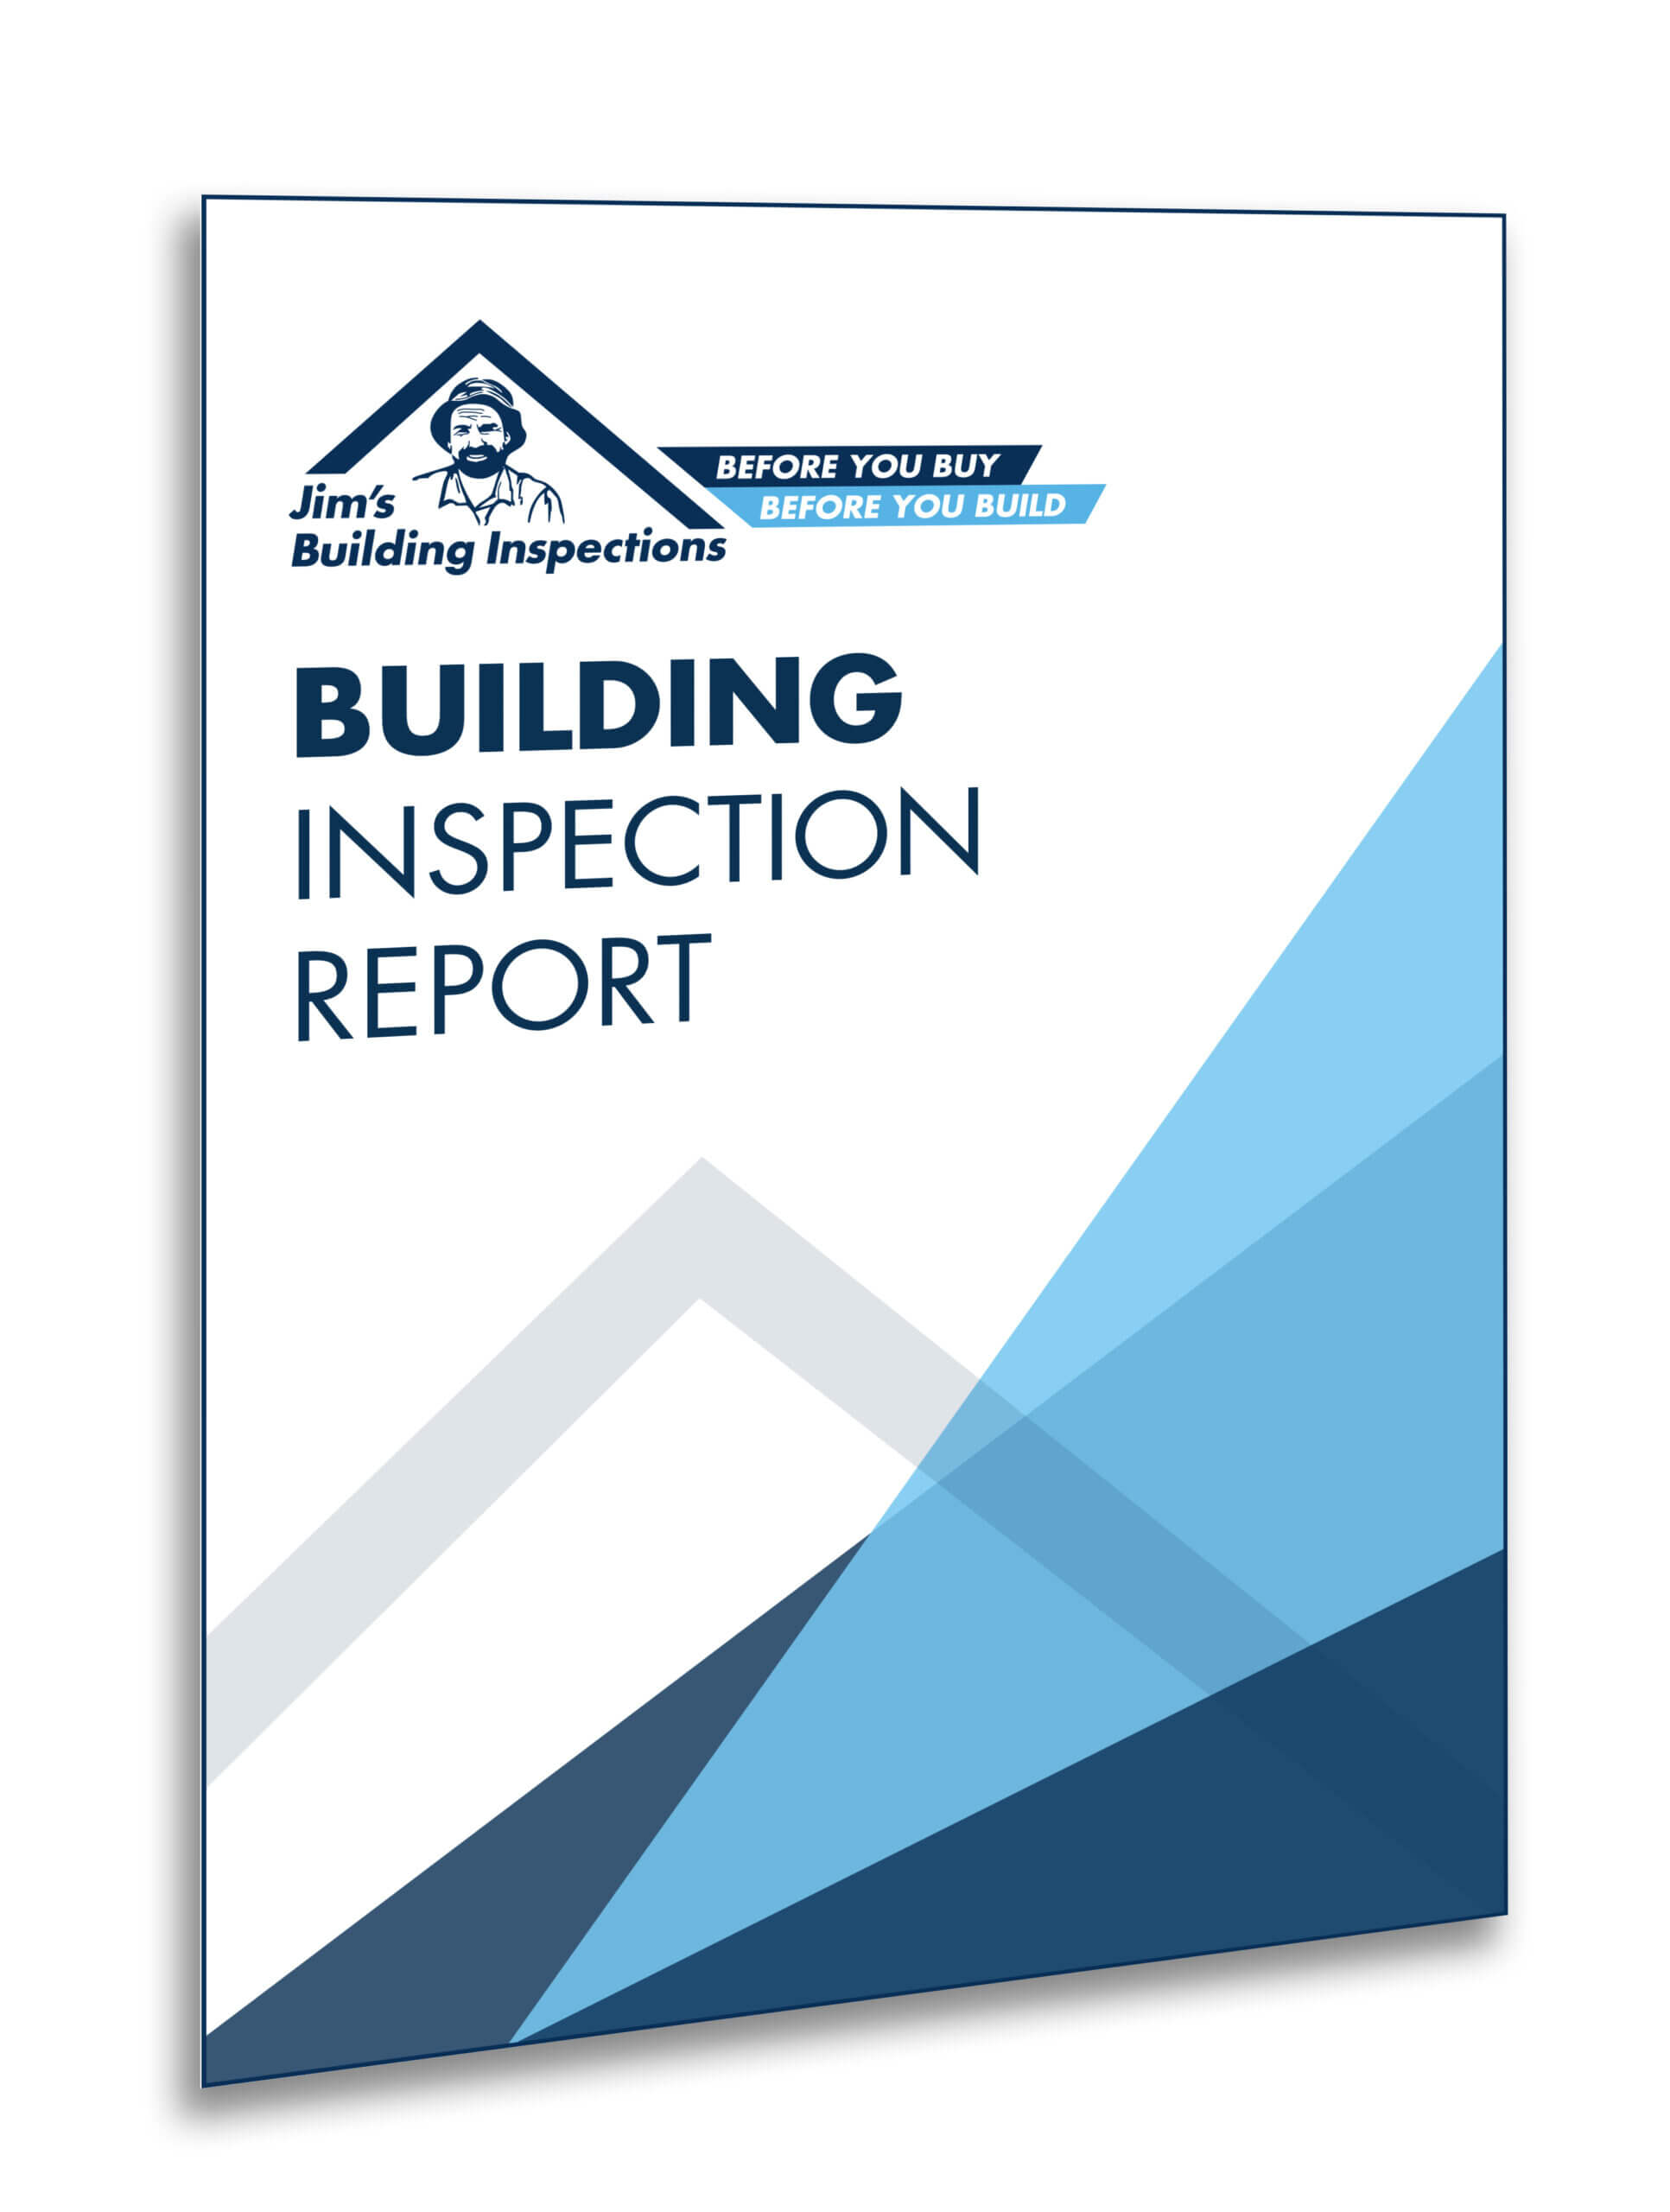 Sample Reports   Jim's Building Inspections Pertaining To Pre Purchase Building Inspection Report Template